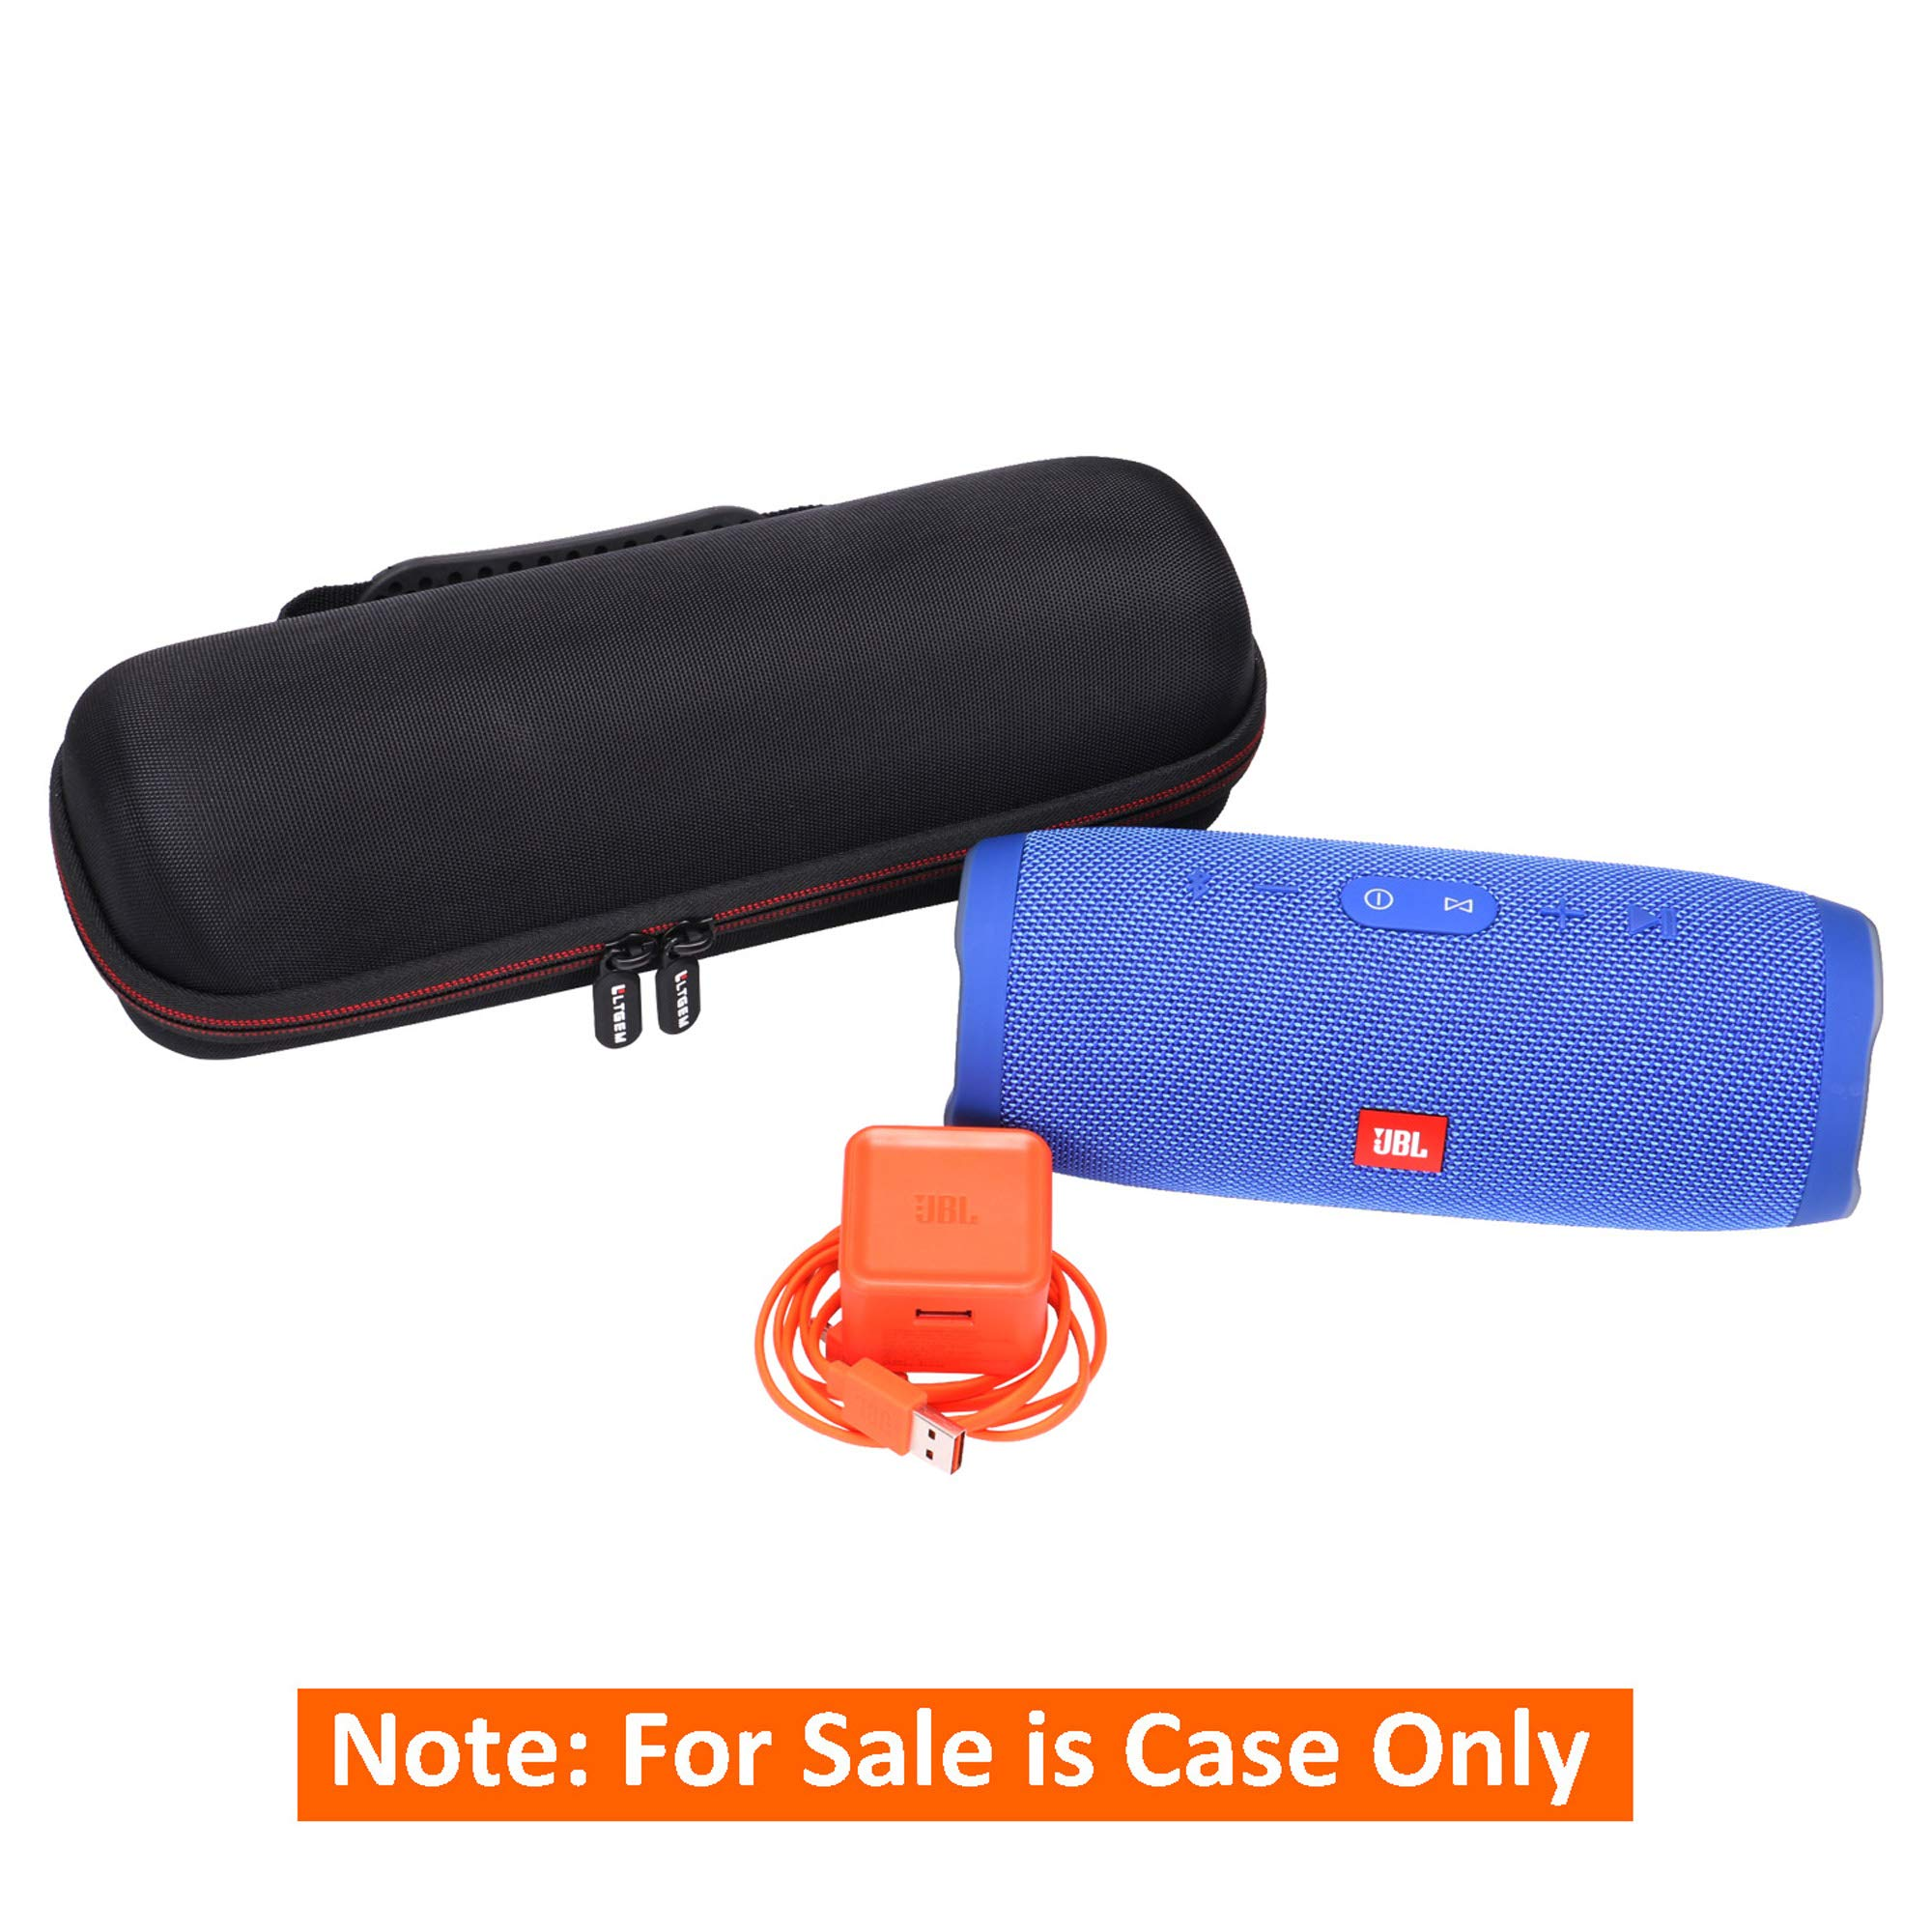 LTGEM Case for JBL Charge 3 Waterproof Portable Wireless Bluetooth Speaker. Fits USB Cable and Charger. [ Speaker is Not Include ] by LTGEM (Image #6)